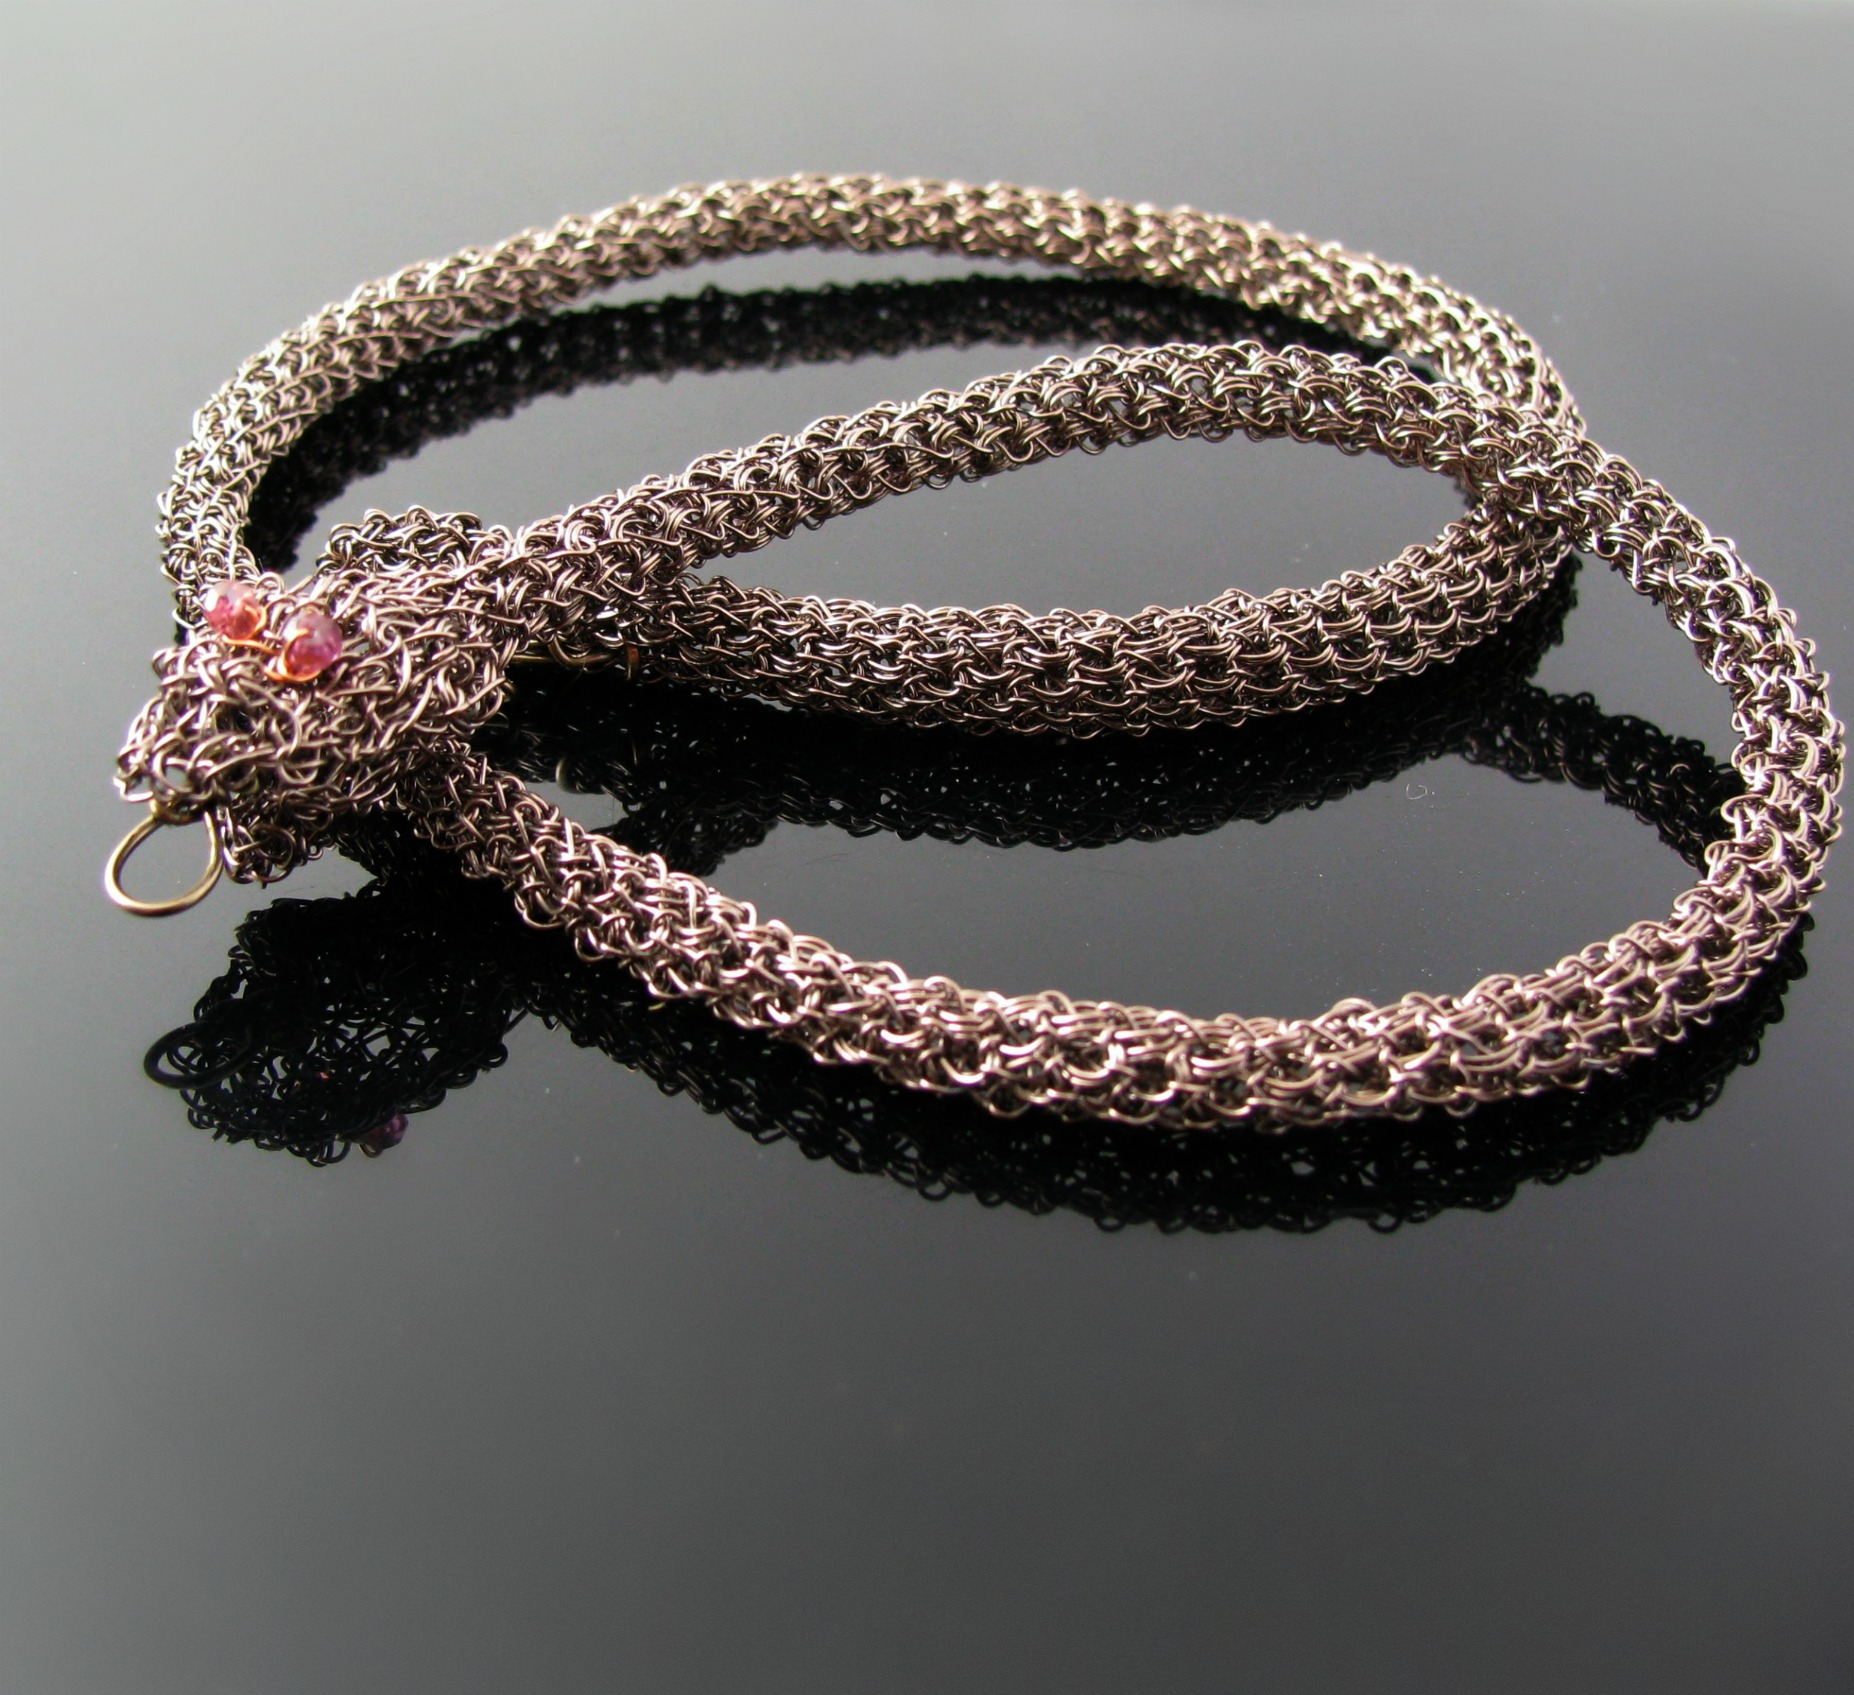 Gunmetal copper wire crochet snake necklace with by CatsWire on Zibbet